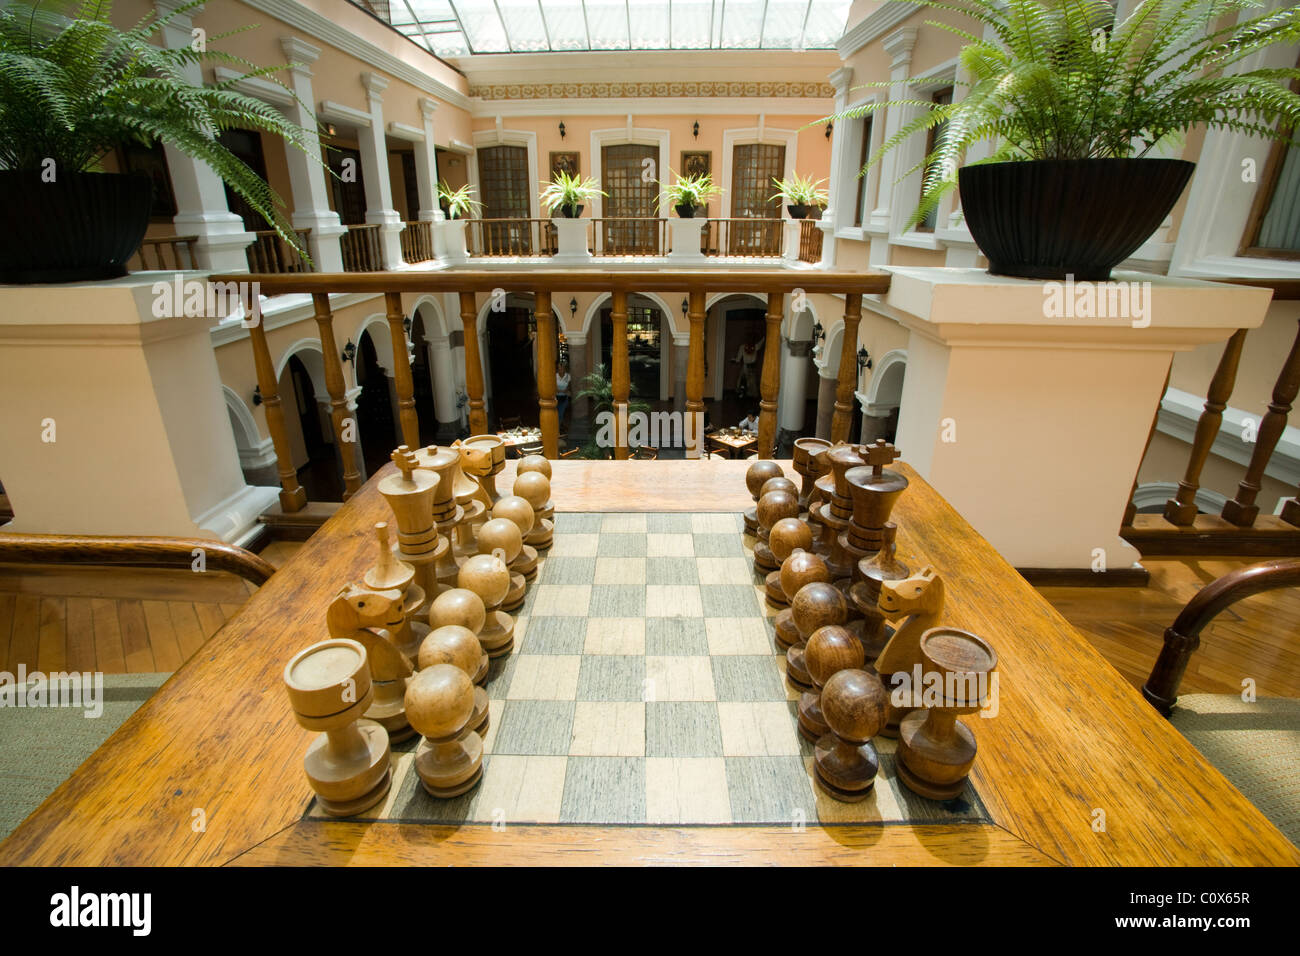 Chess Set And Atrium At Hotel Patio Andaluz   Quito, Ecuador